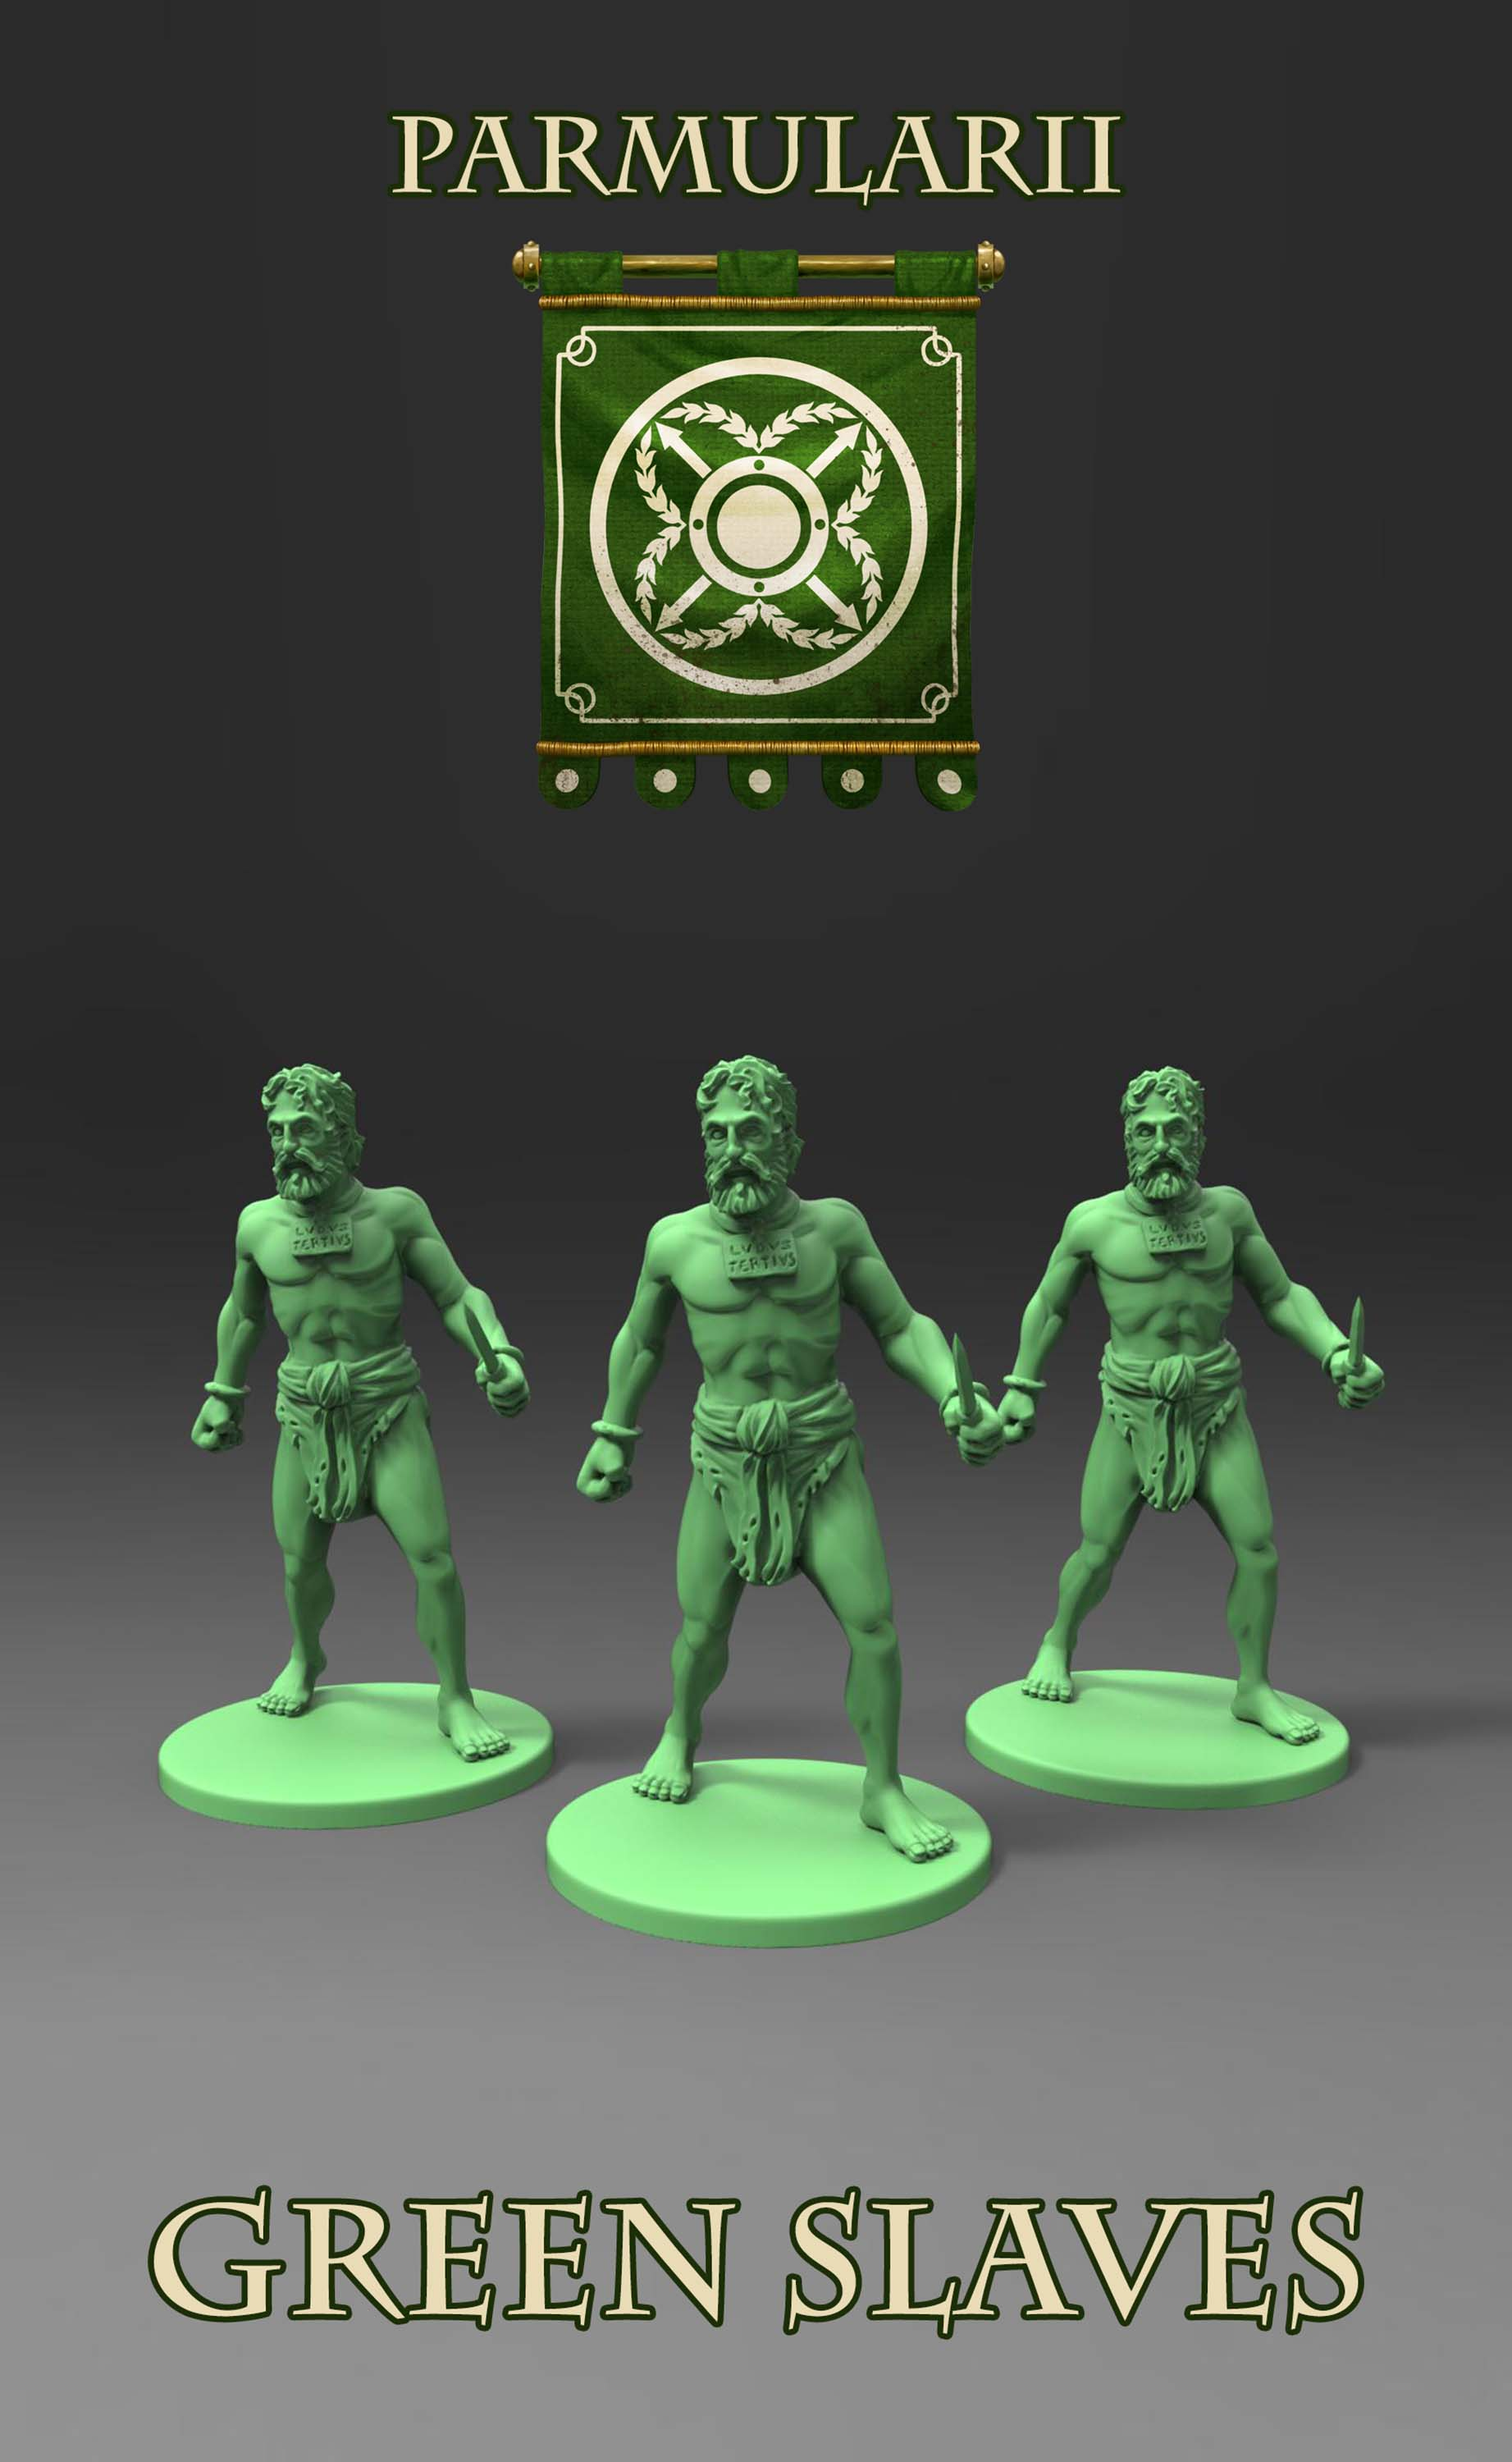 Green Slaves (Parmularii)